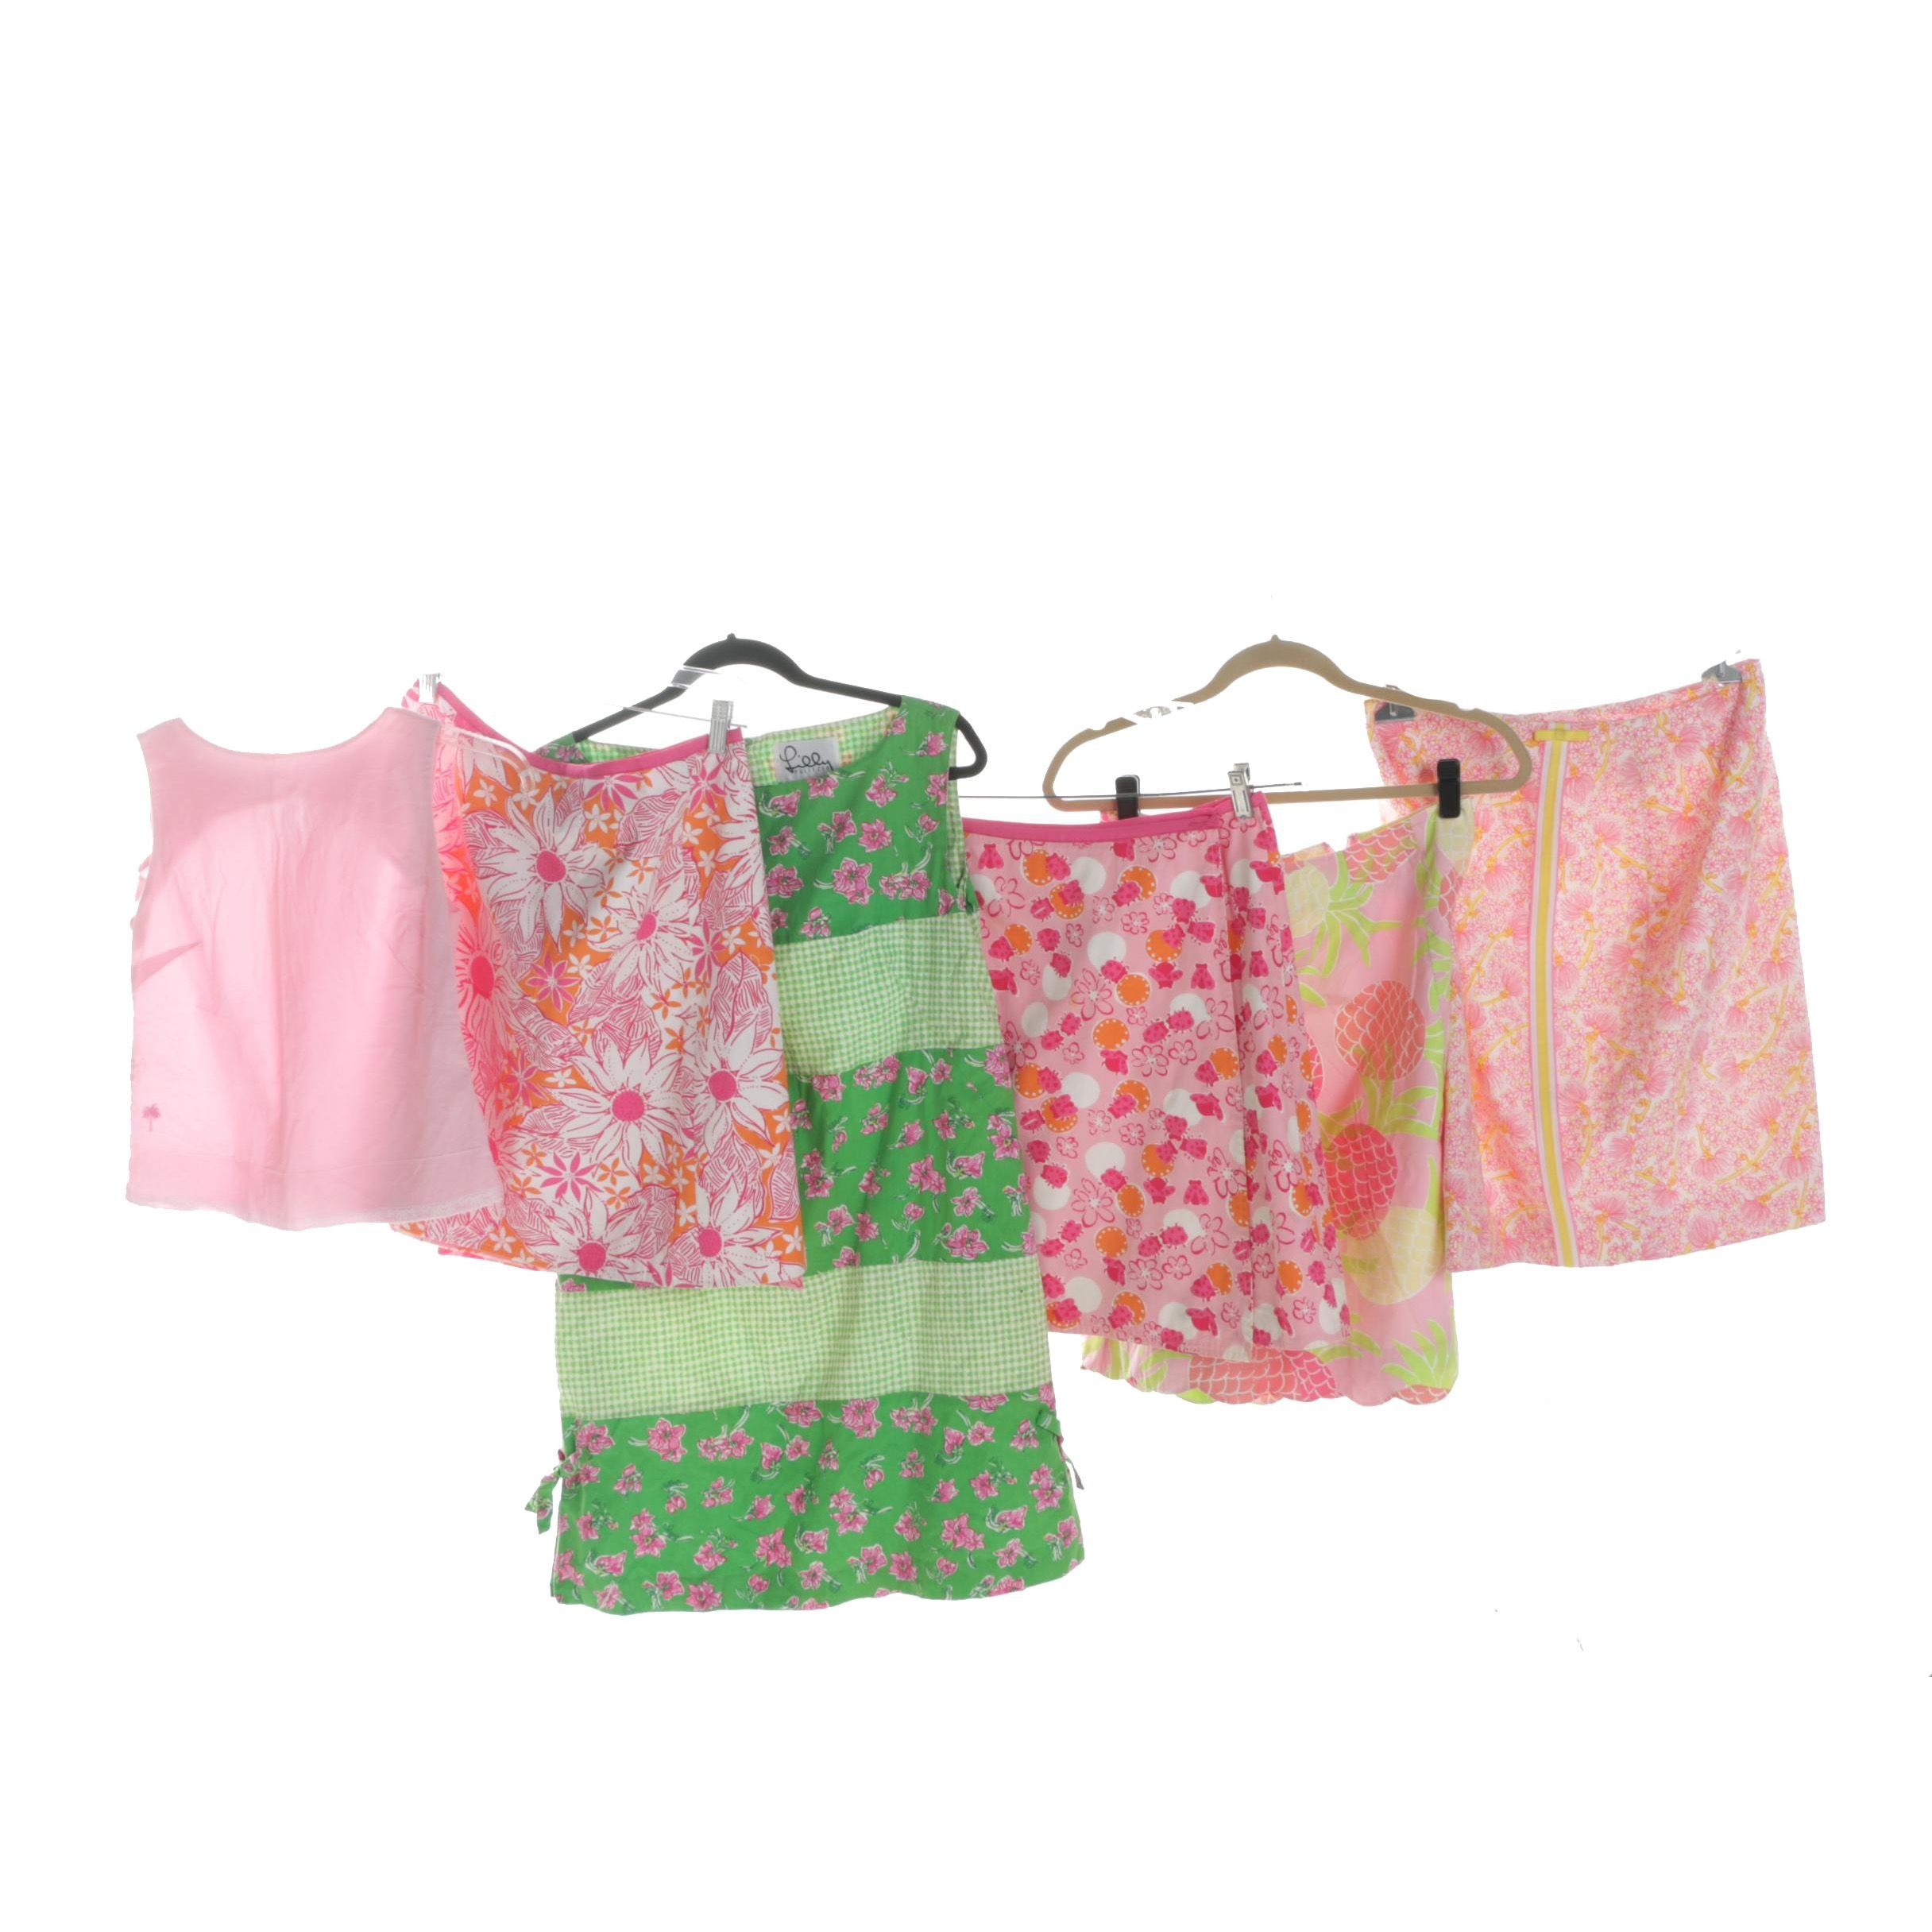 Lily Pulitzer Assortment